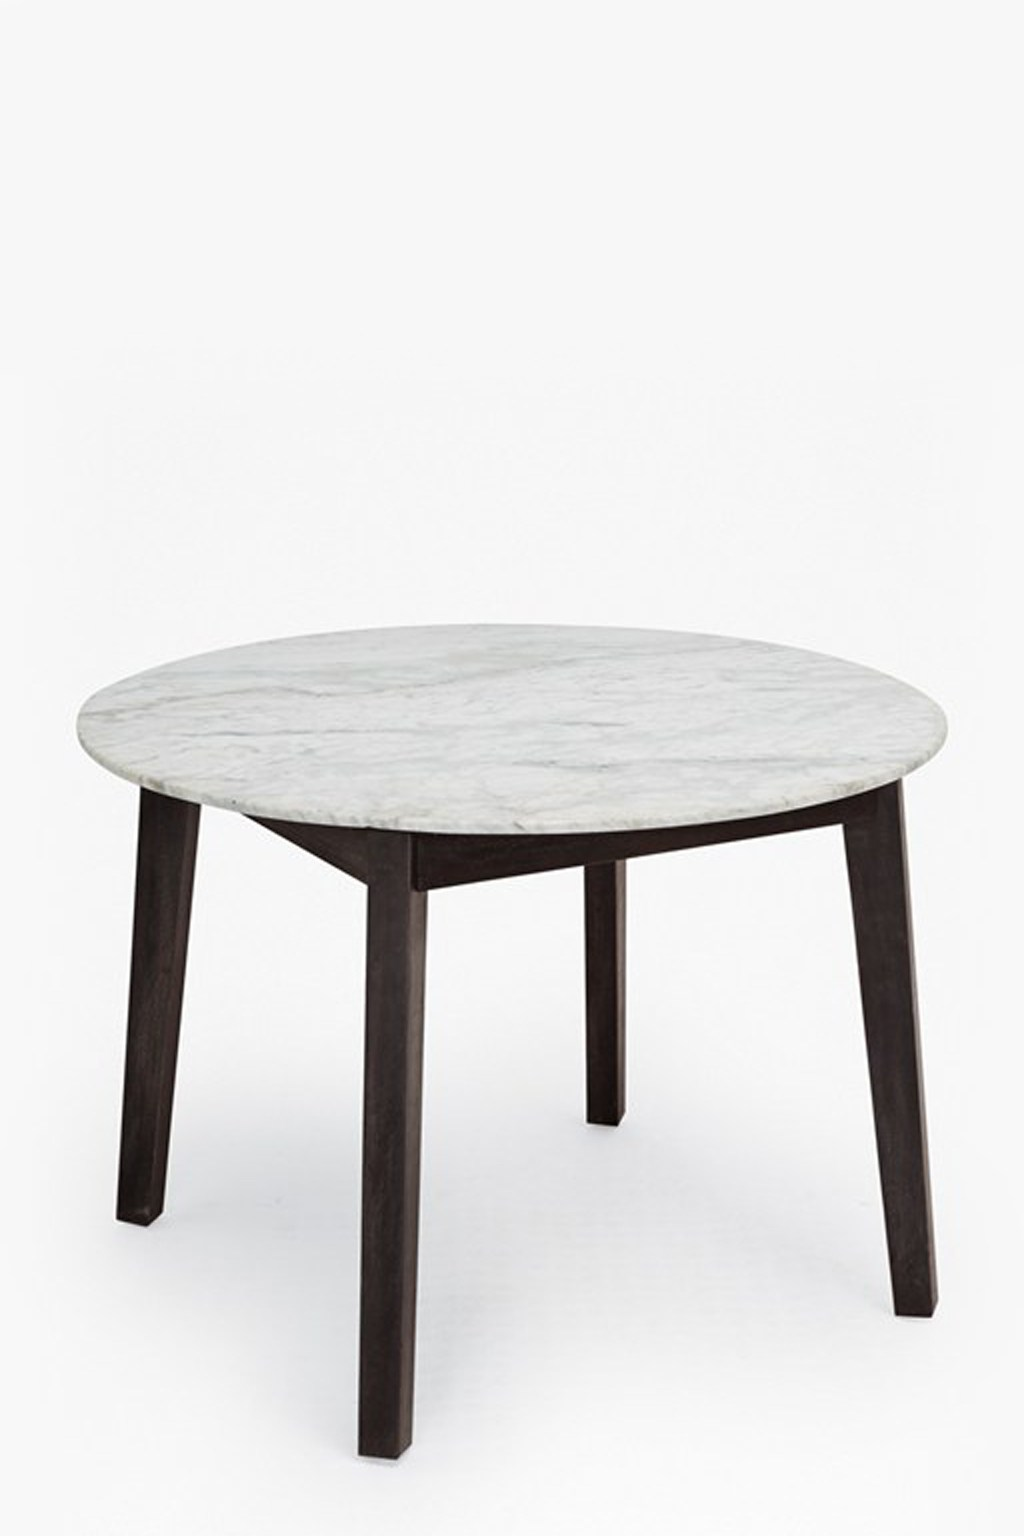 Perfect Agra Round Marble Dining Table. Loading Images.